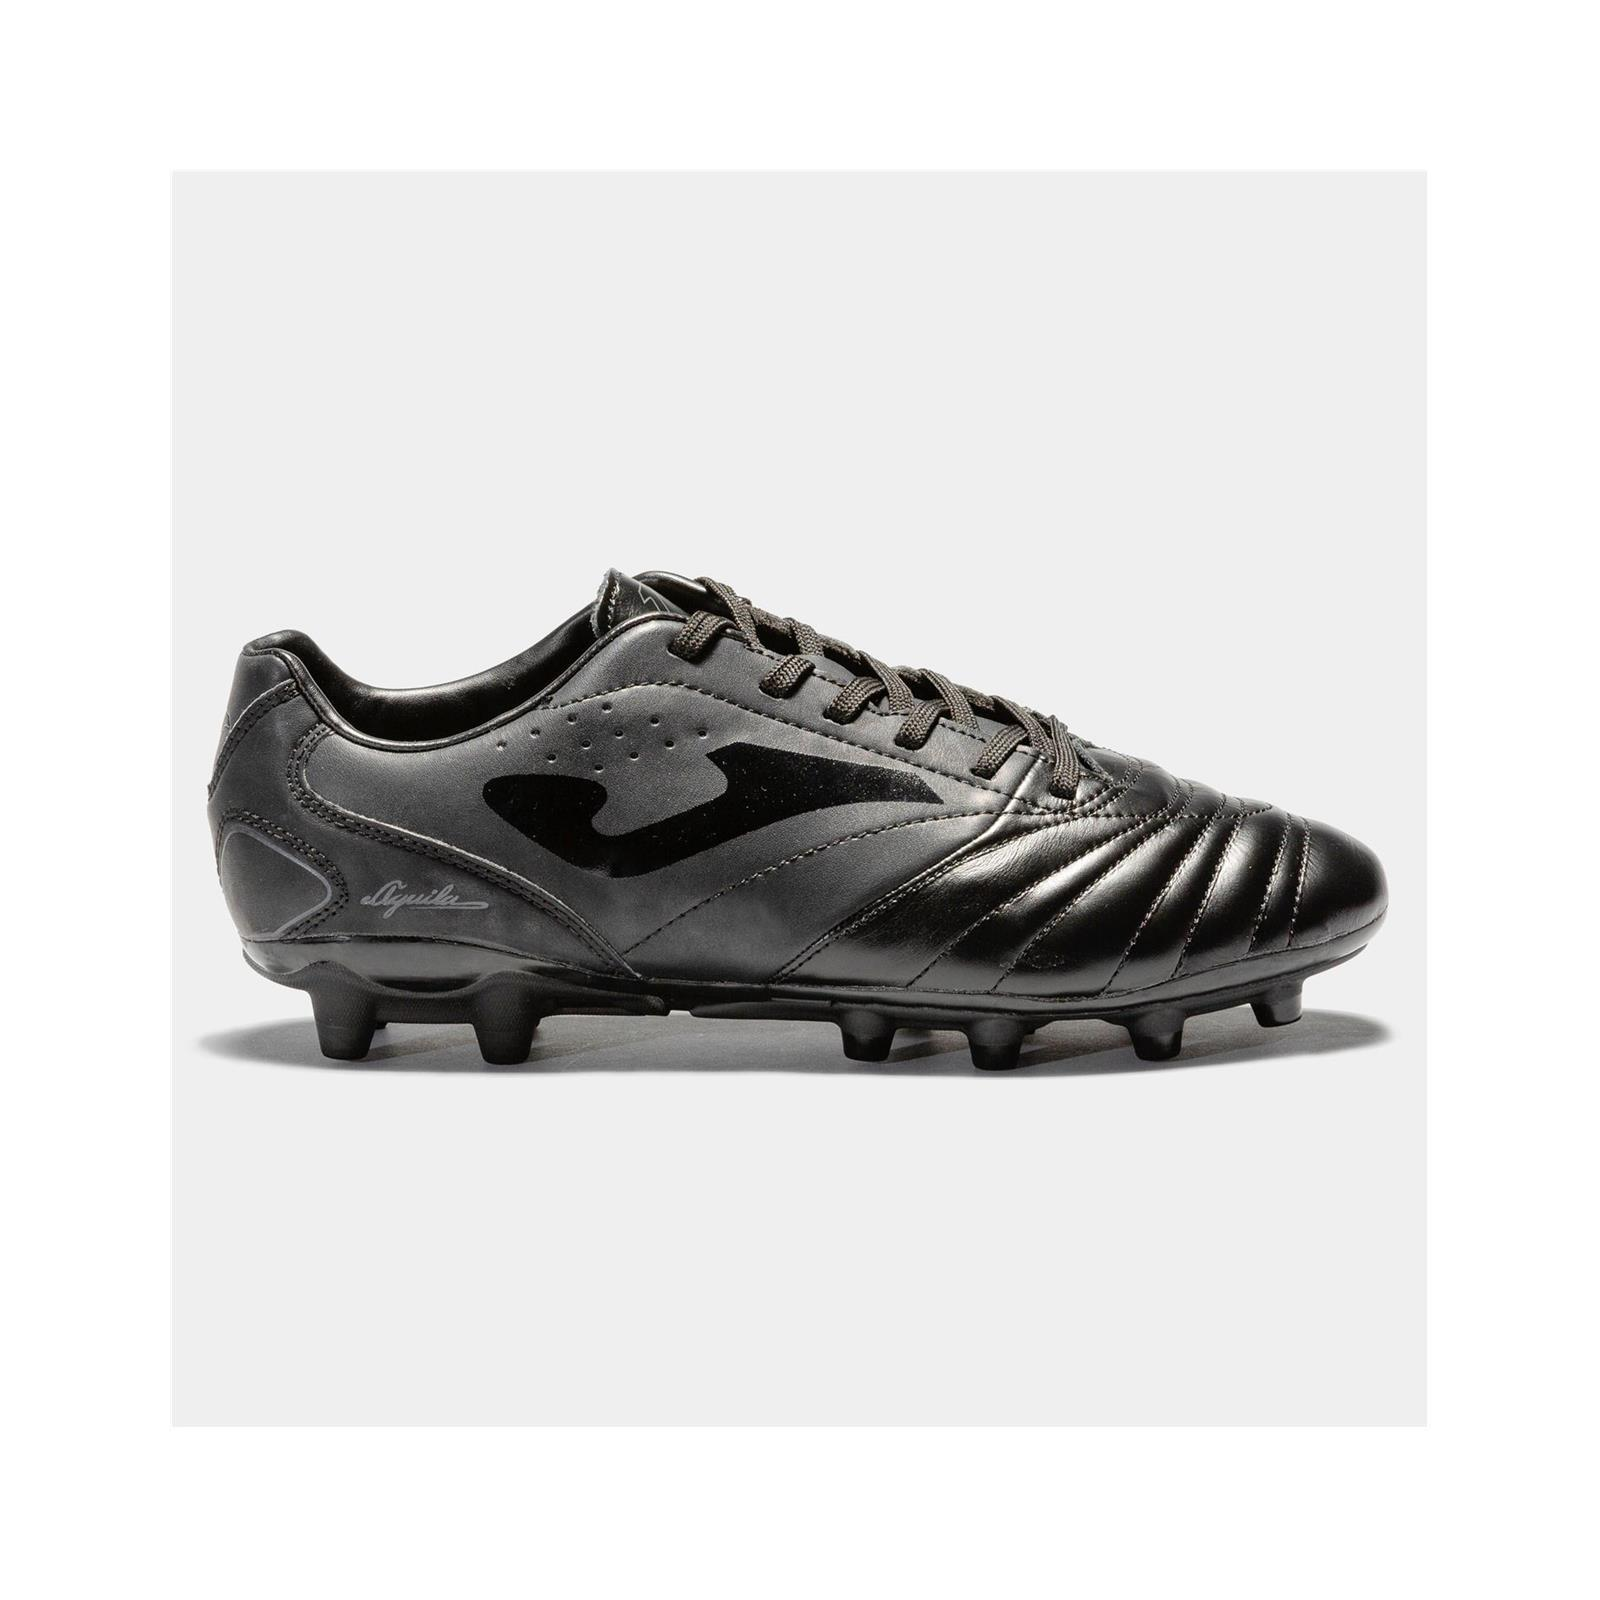 JOMA Scarpa Aguila Gol 821 Firm Ground (39 - NERO)